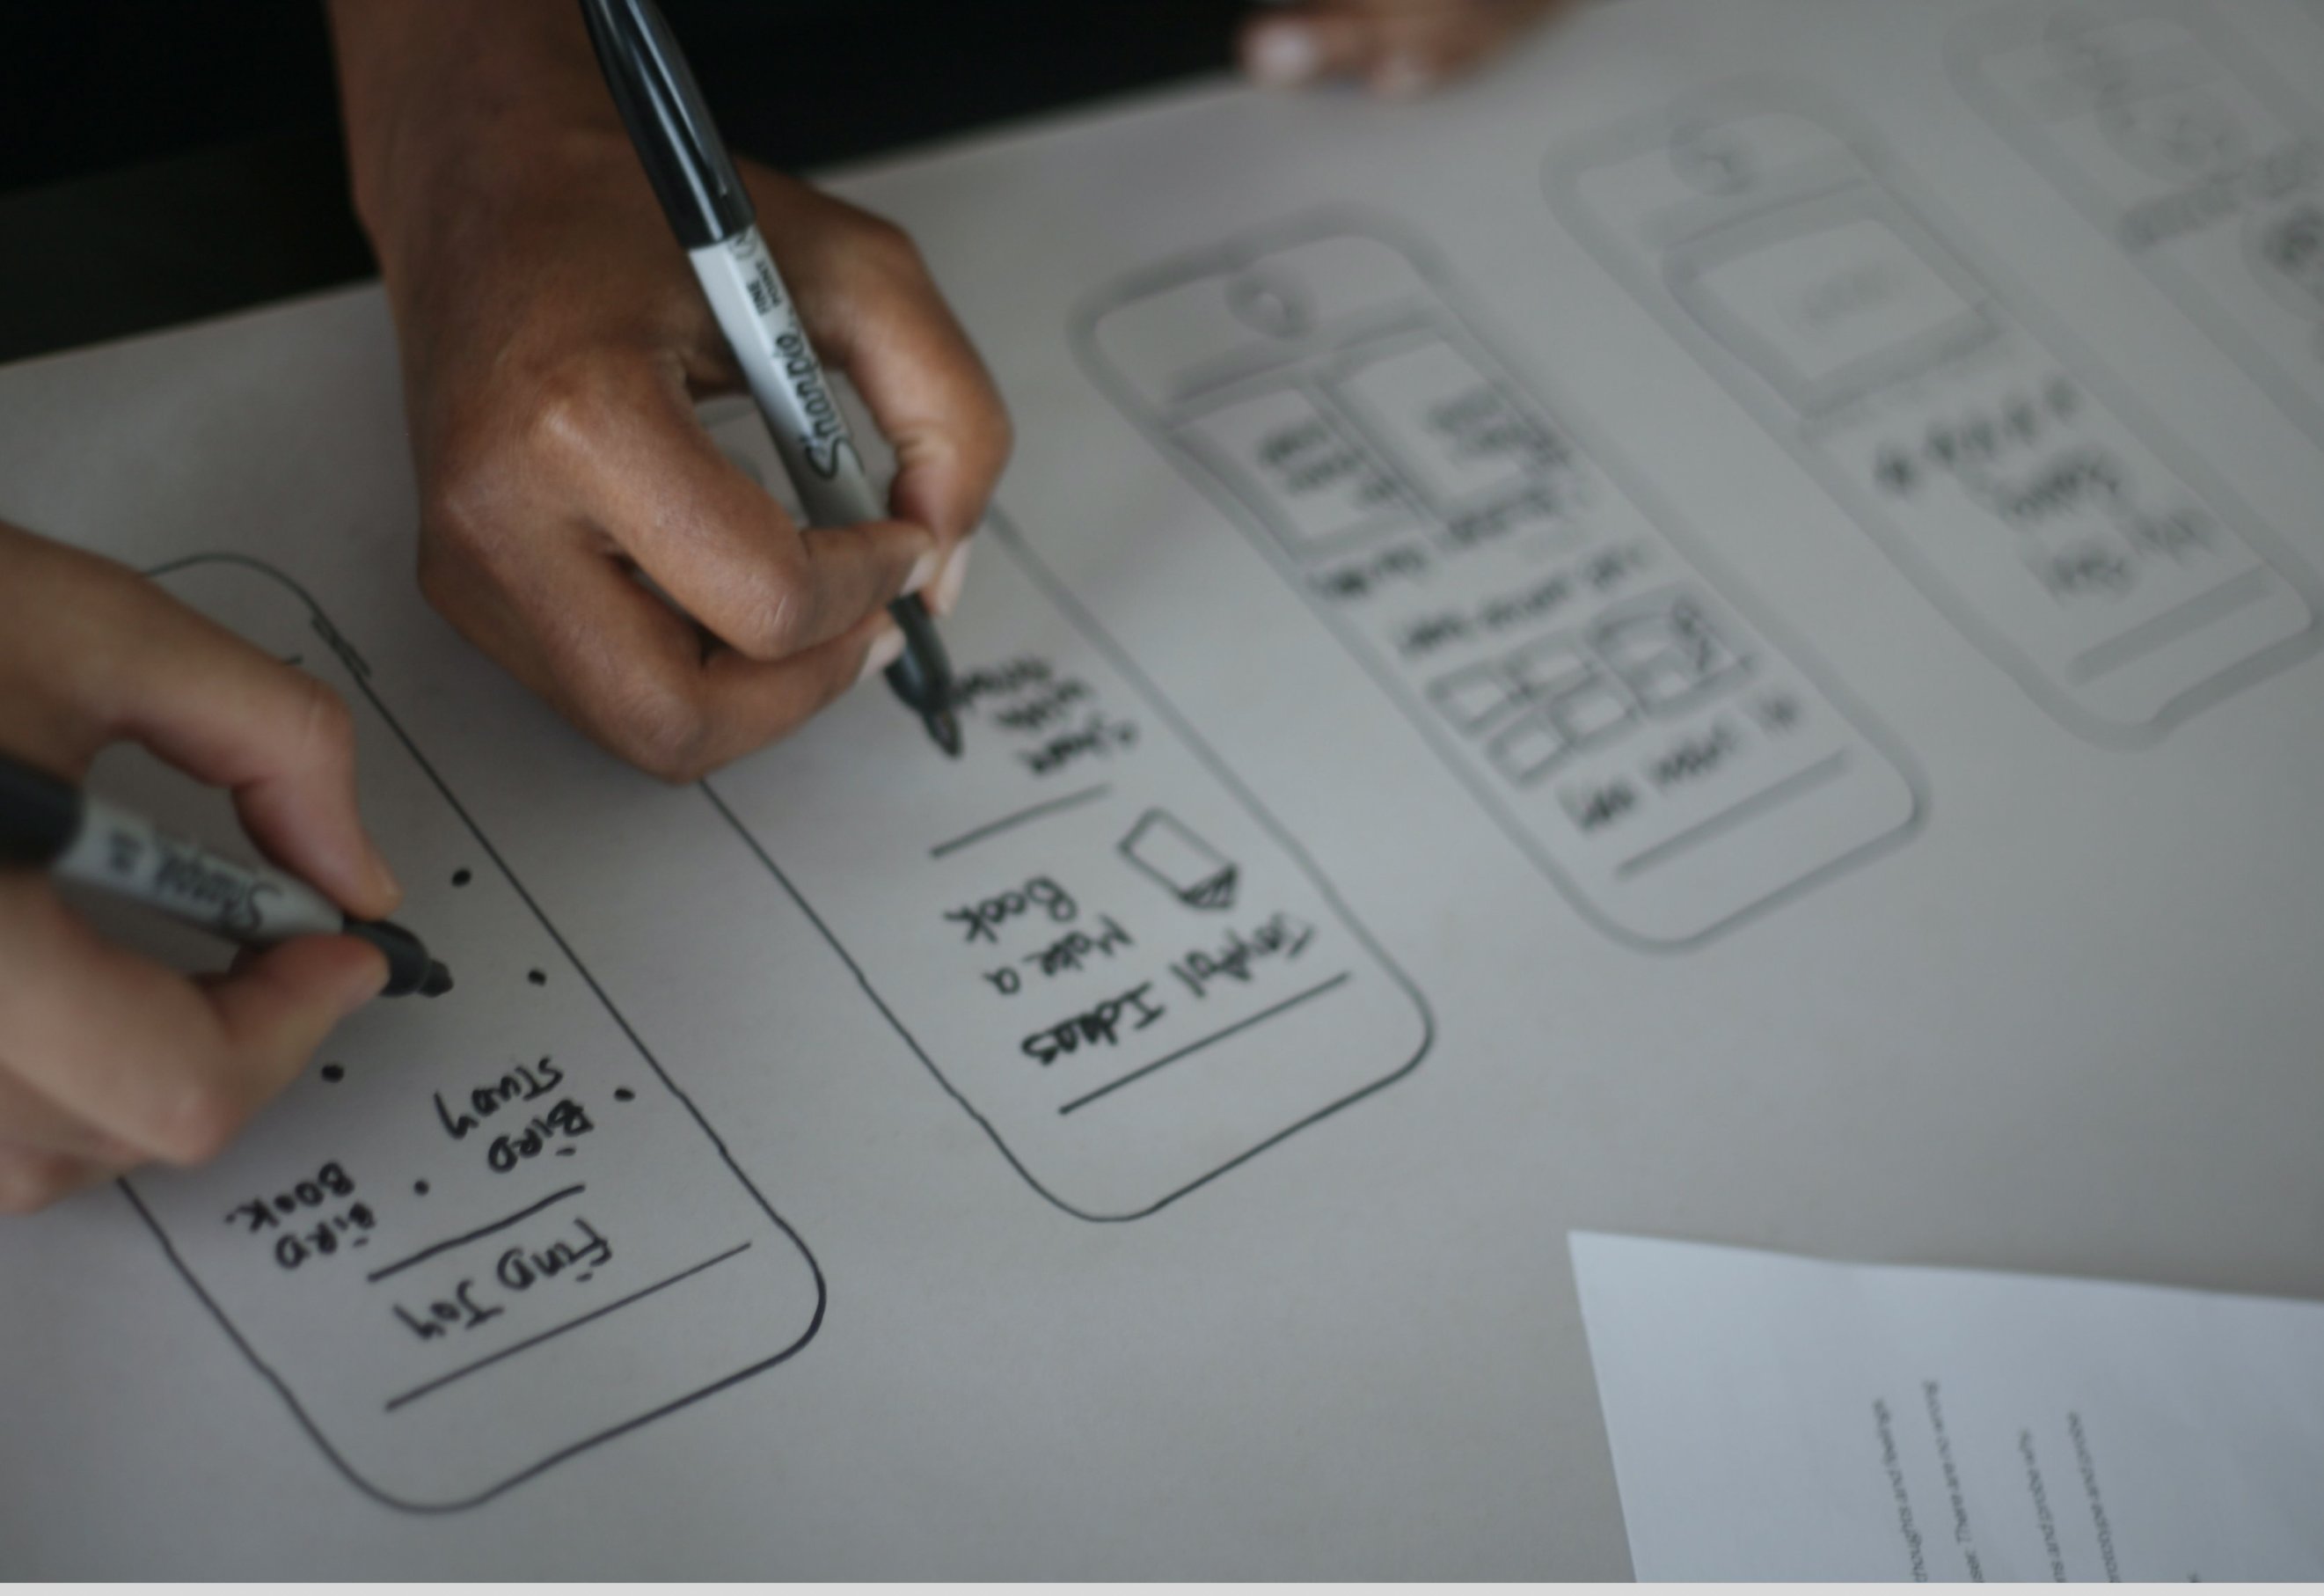 Close up of hands holding sharpies and drawring mobile phone wireframes